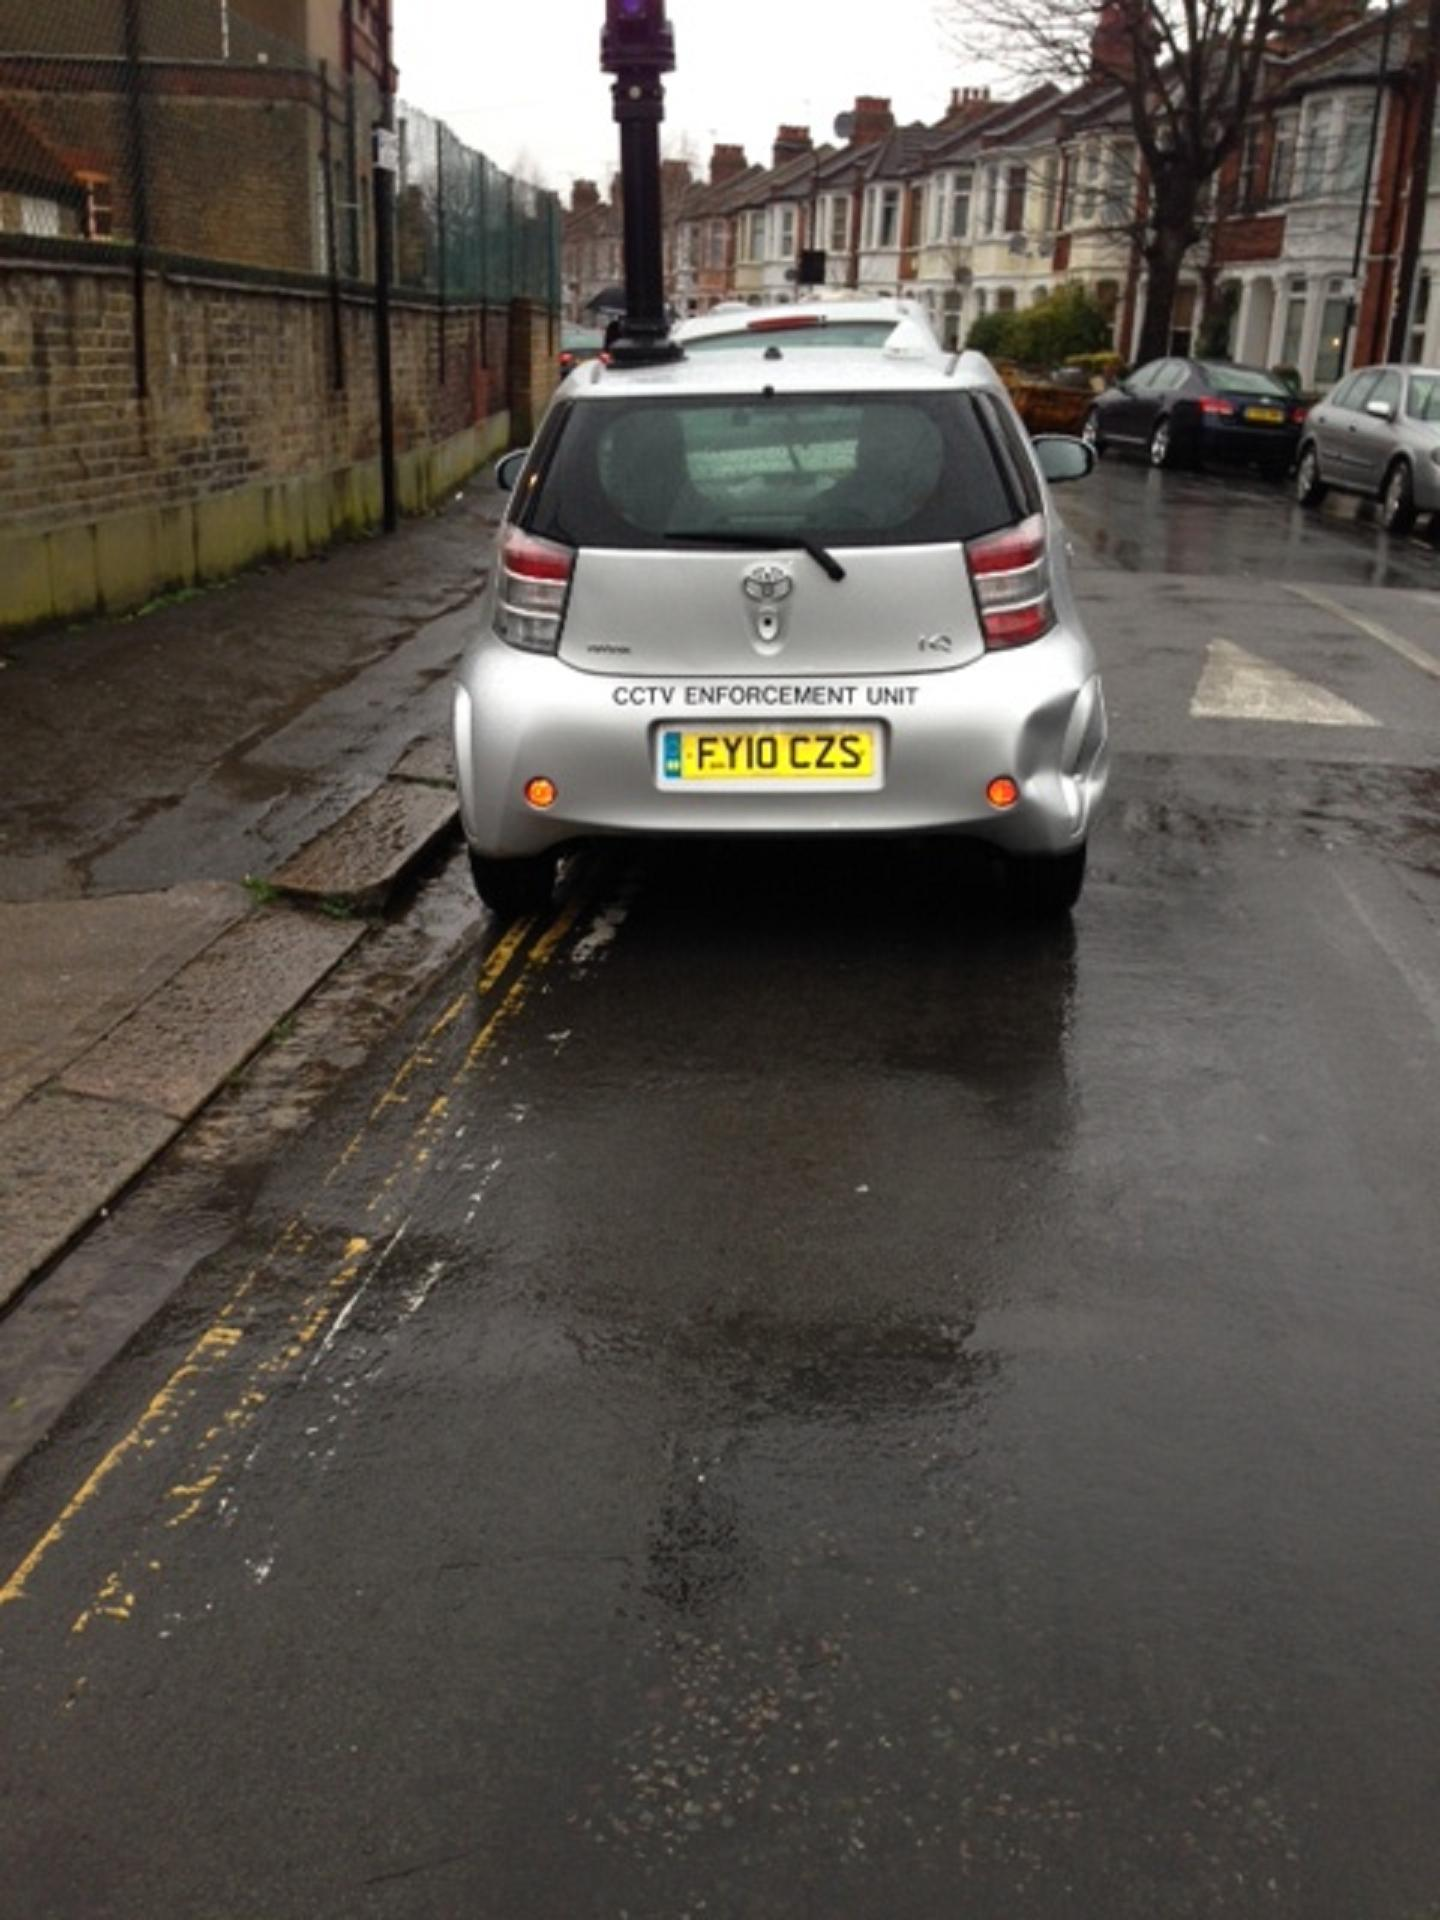 Council CCTV car snapped parking illegally